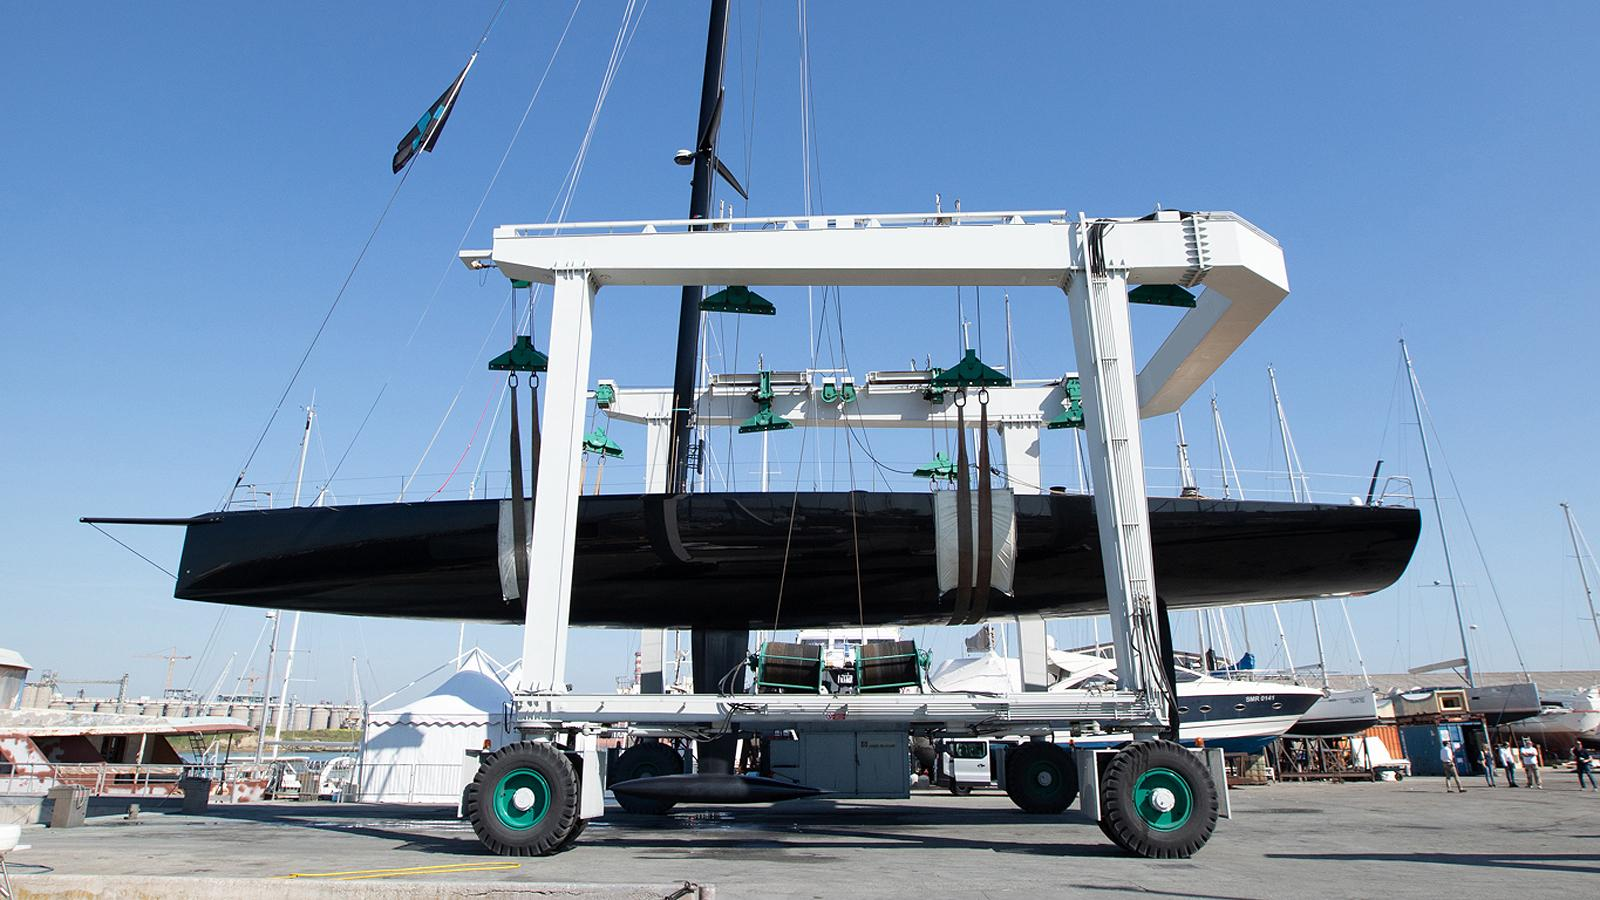 nahita wally 93 sailing yacht 2018 28m launch profile